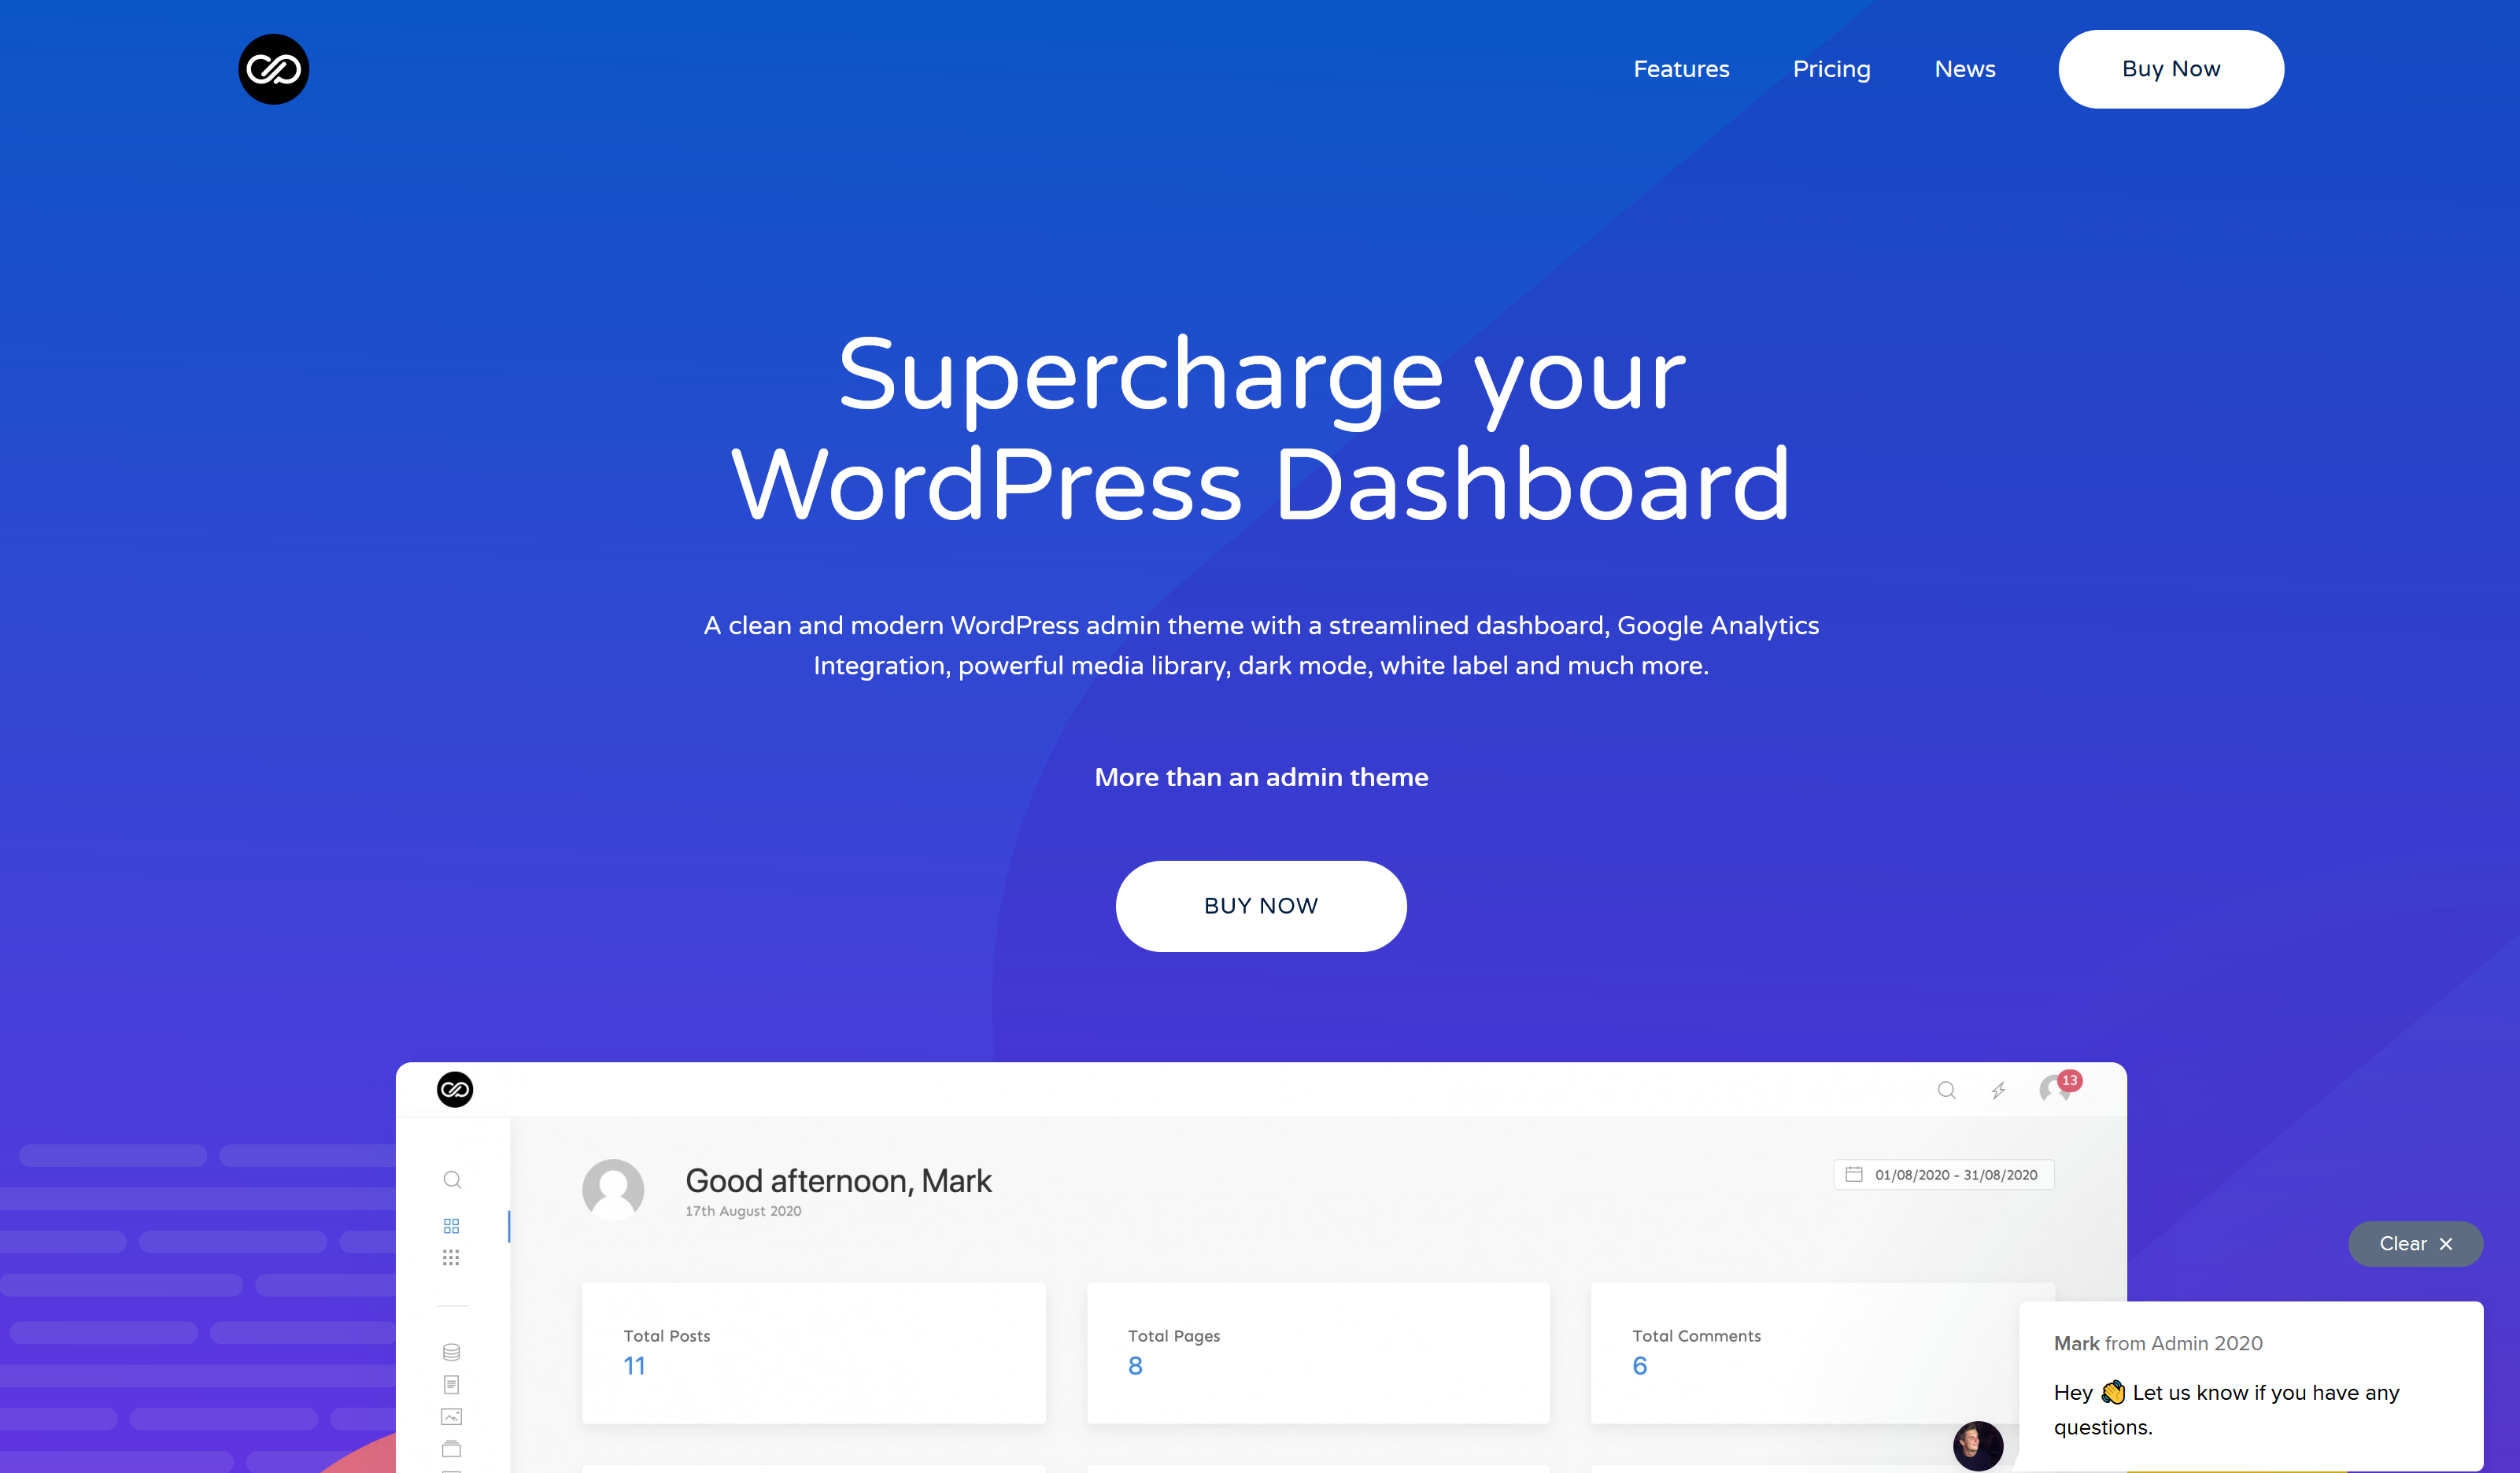 WP Admin 2020 2.0.7 – Supercharge your WordPress Dashboard